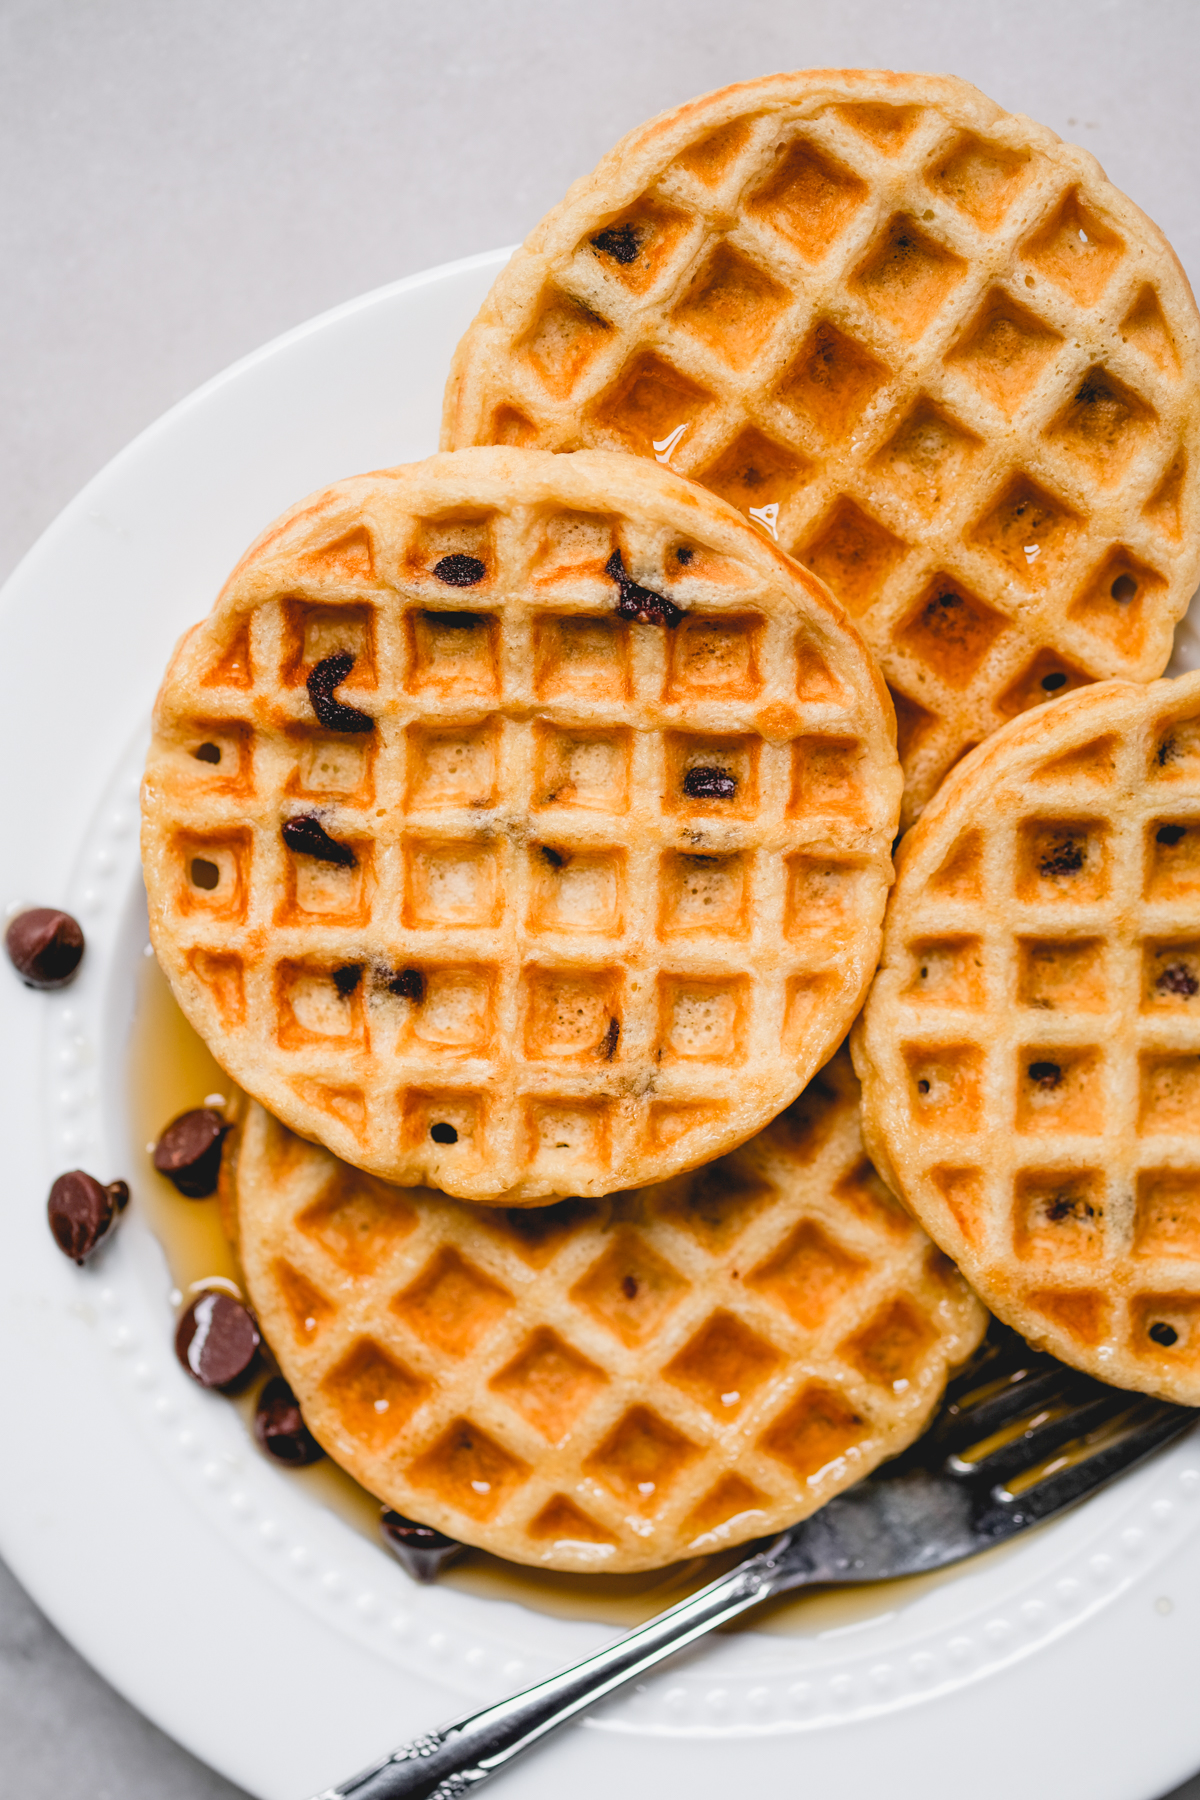 mini chocolate chip oat waffles spread out on a plate with syrup